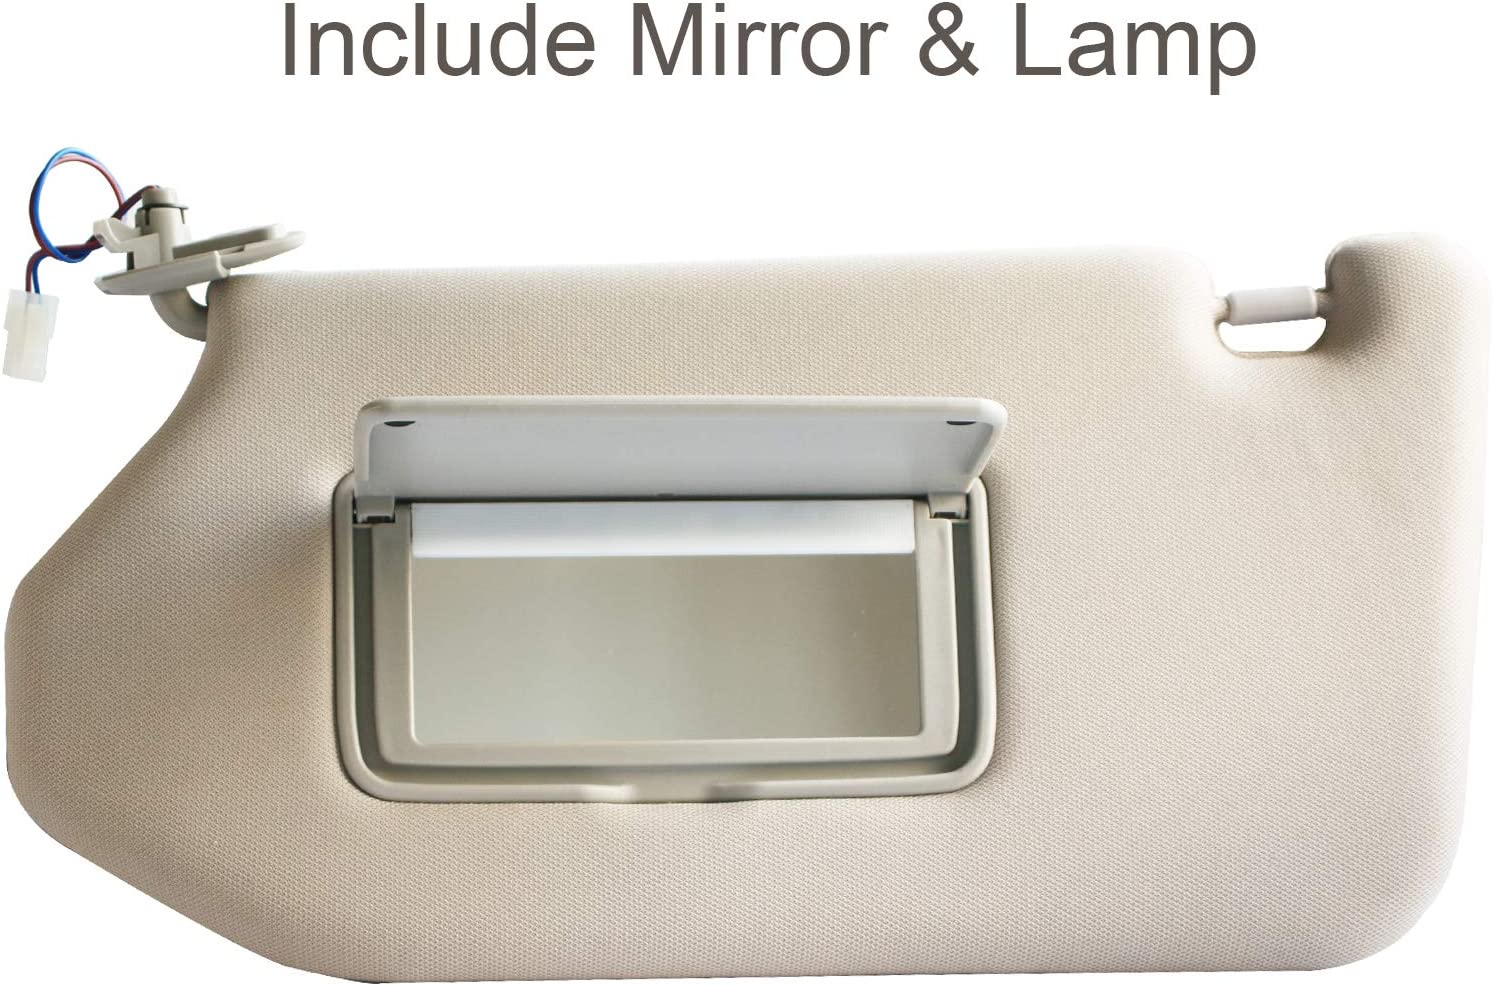 R Darwenxy Right Passenger Side Light TAN Sun Visor with Mirror/&Lamp for 2013-2018 Pathfinder 2014-2017 Infiniti QX60 JX35 Replaces Part #964009PB0A